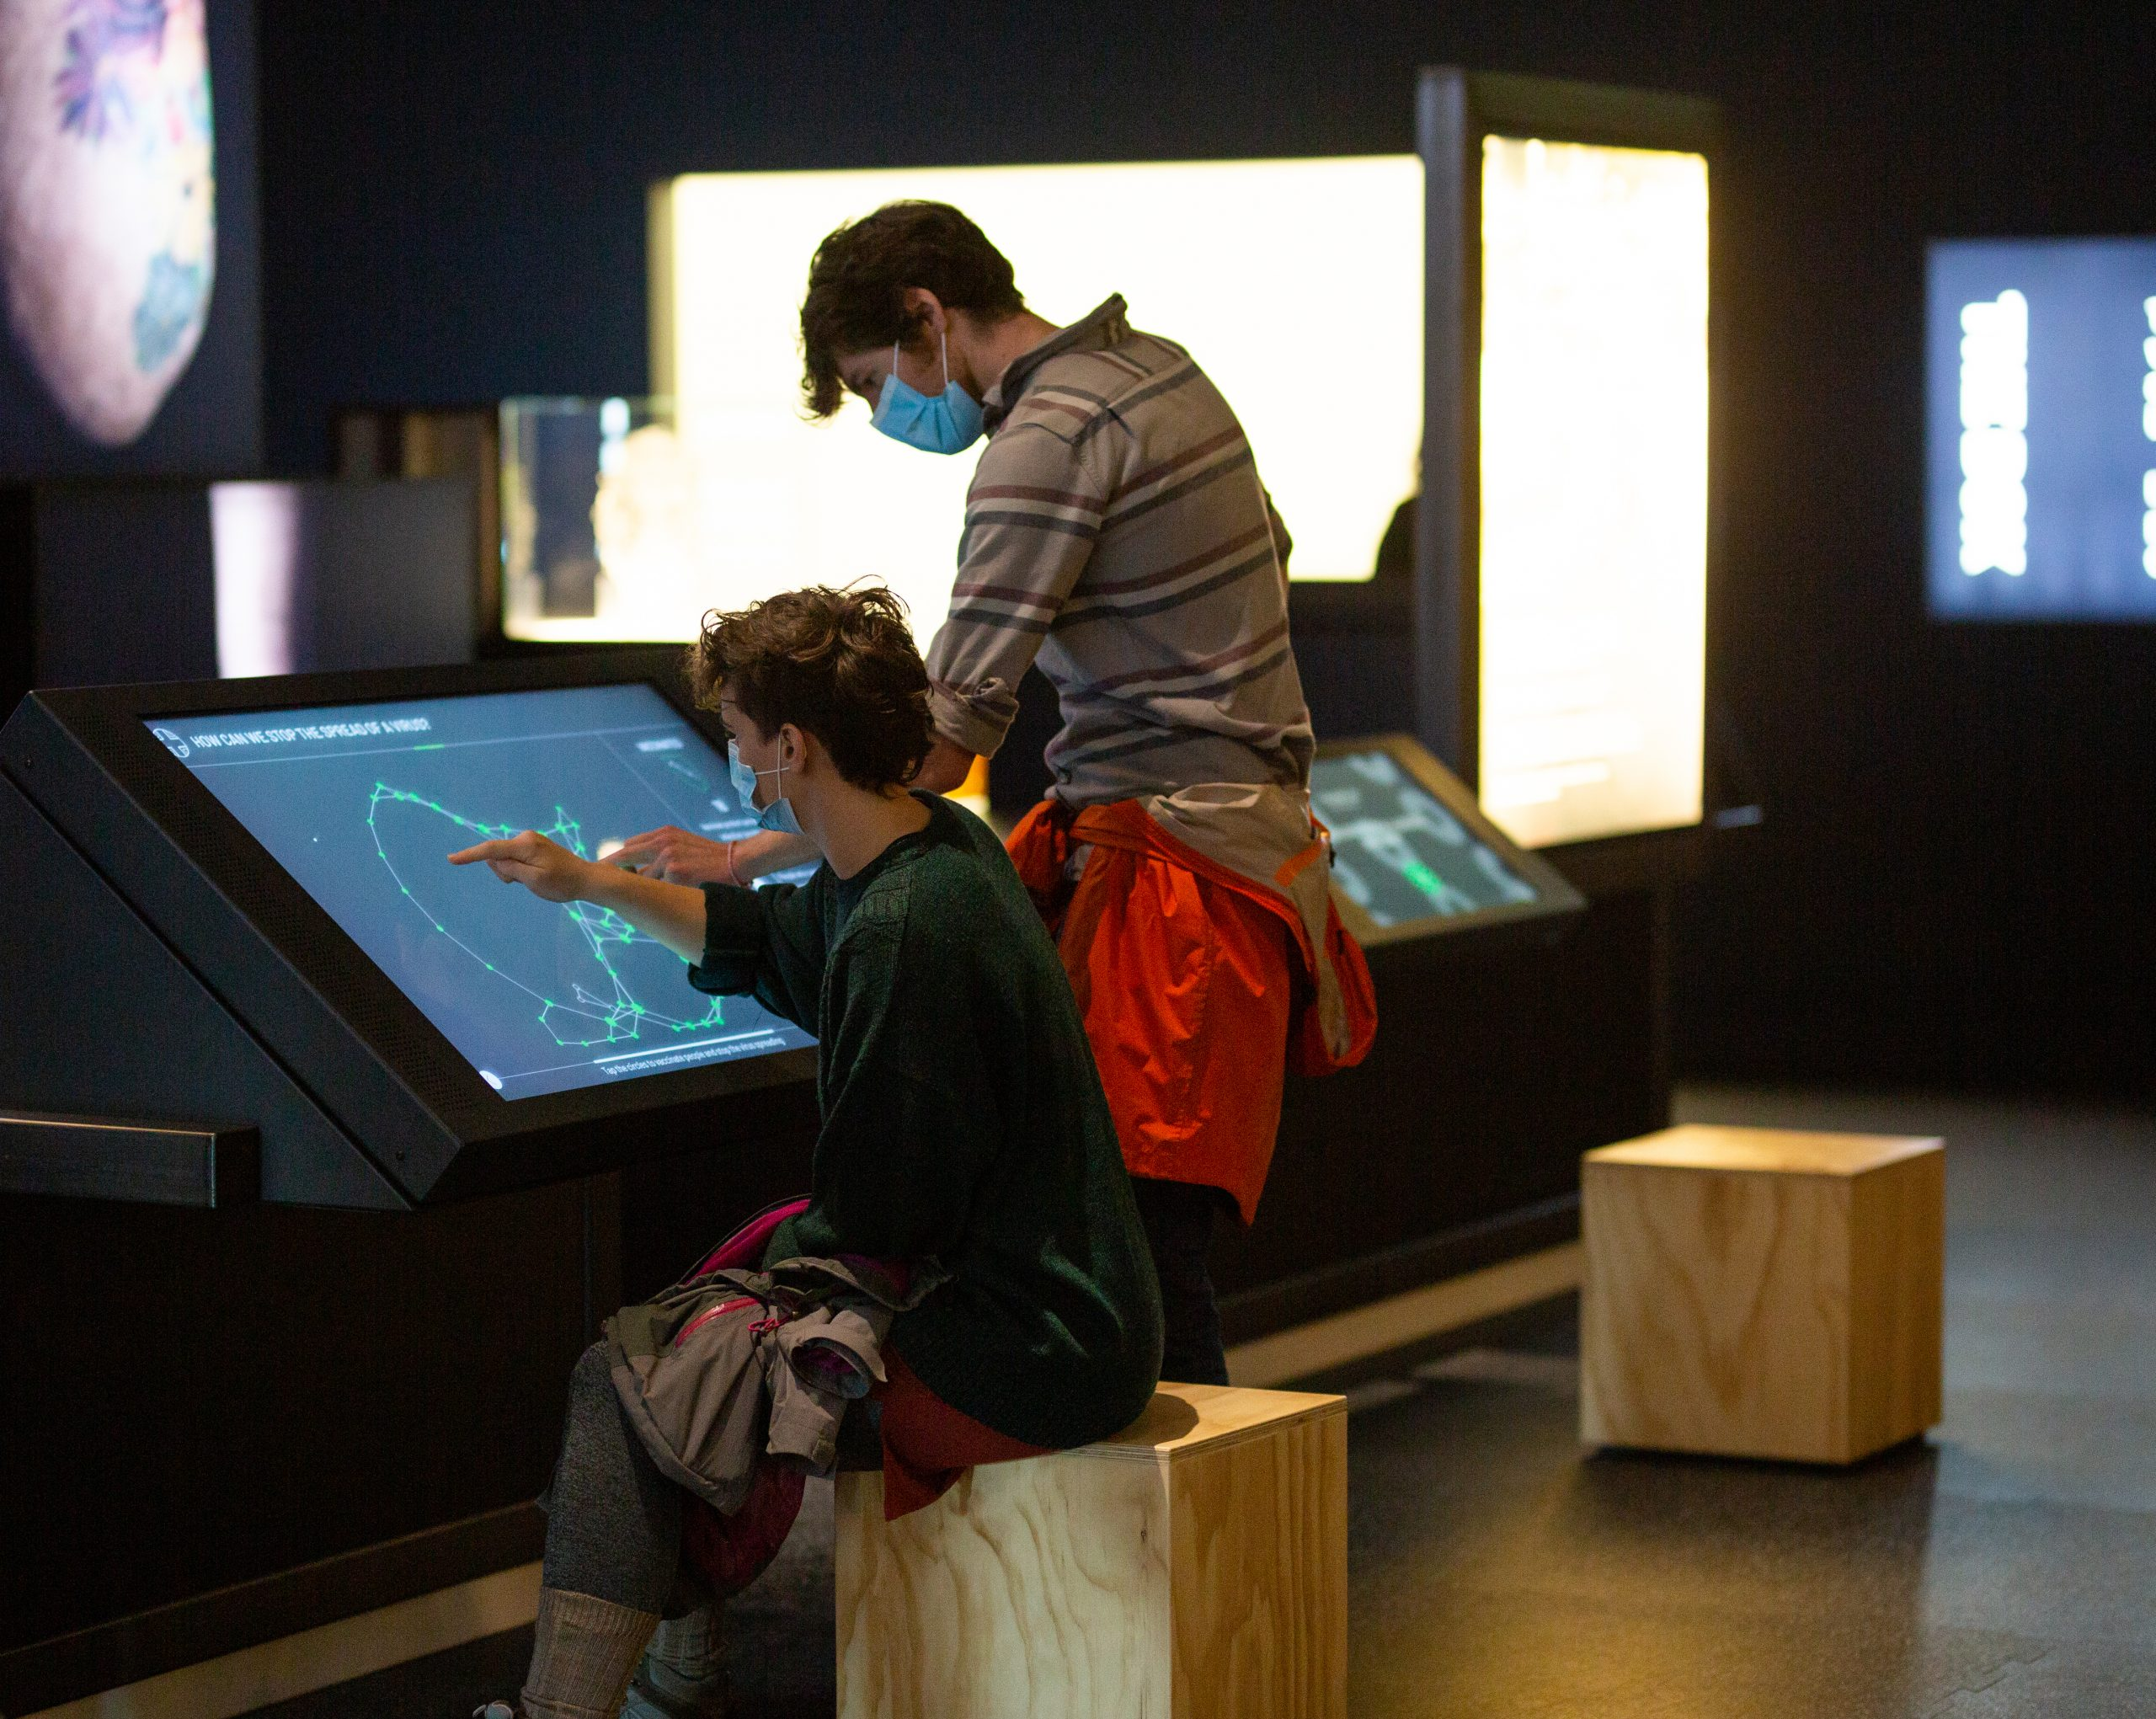 Two visitors to We The Curious are using a large touch screen to map out a constellation and ask a question. They are both male, white, with brown hair and are wearing face masks.